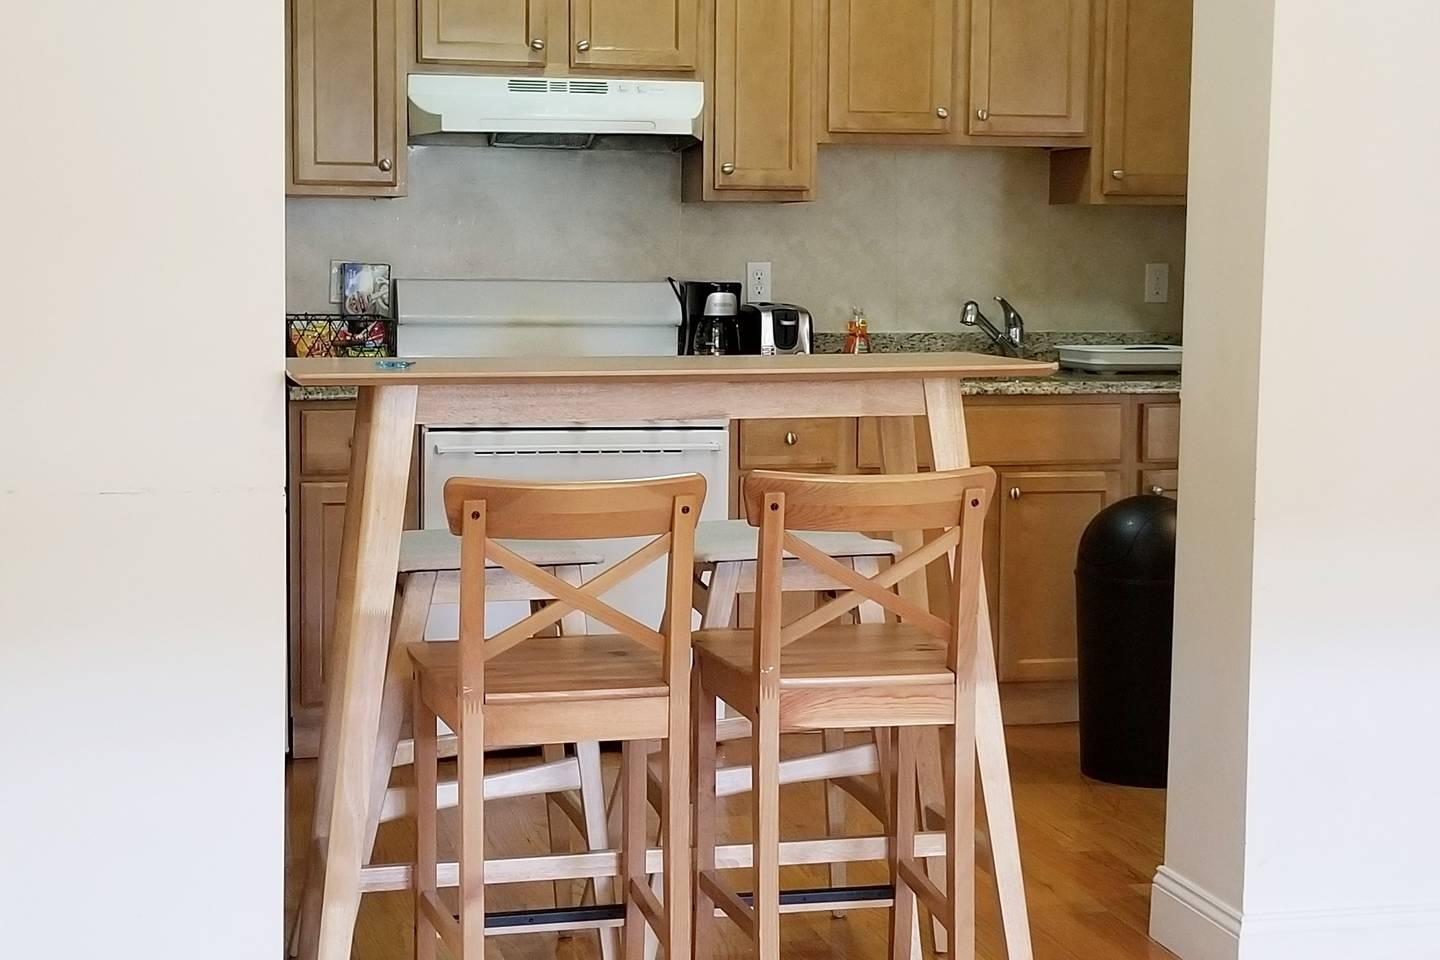 BOSTON AIRBNB SAVE $$$ ON STAY #2A photo 5841514